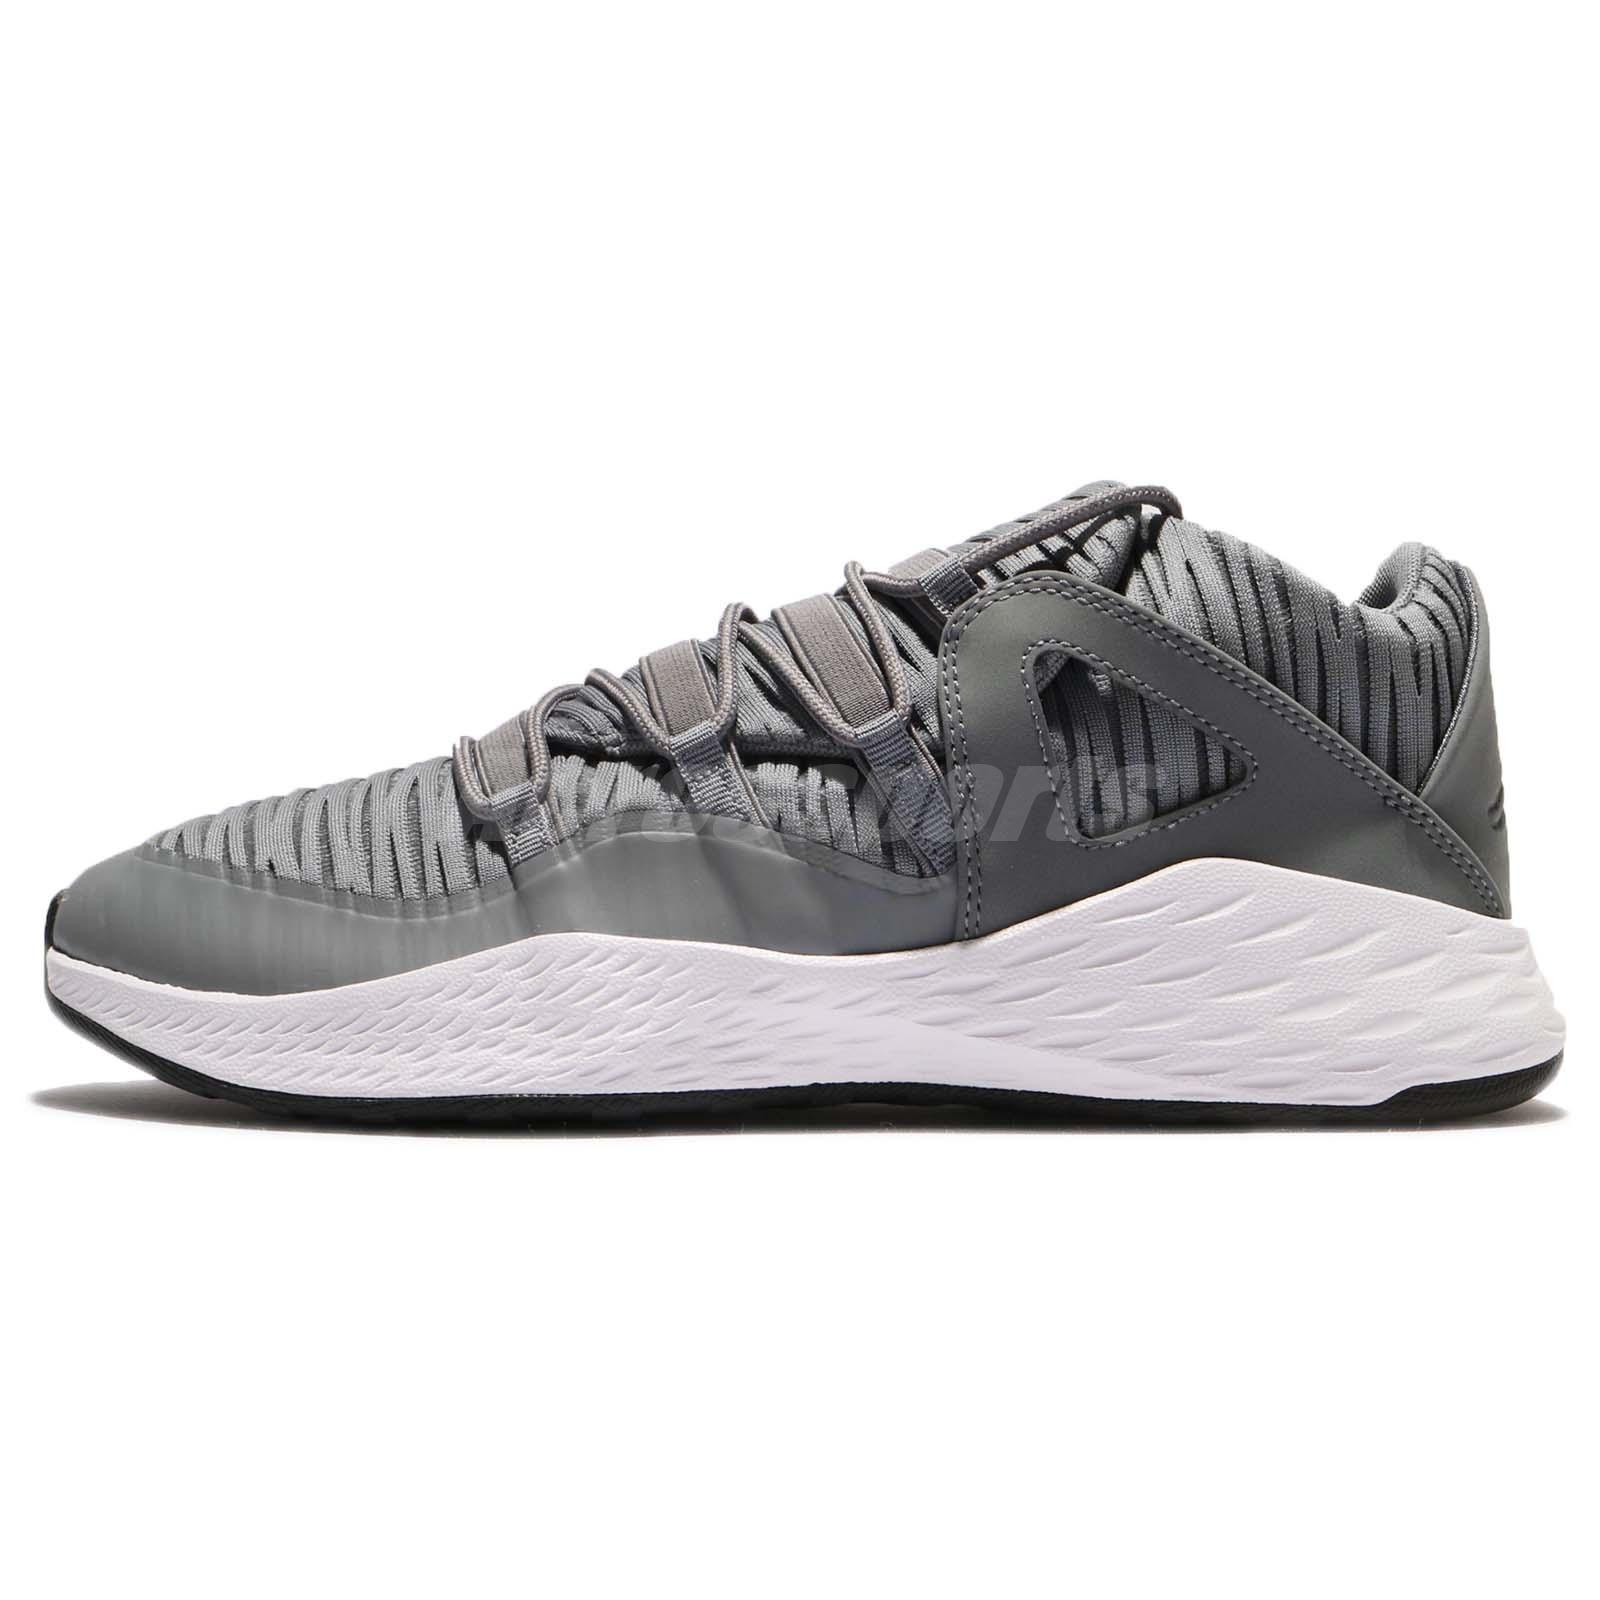 edaeea1ca97 Nike Jordan Formula 23 Low Cool Grey White Men Lifestyle Shoes AJX 919724- 004